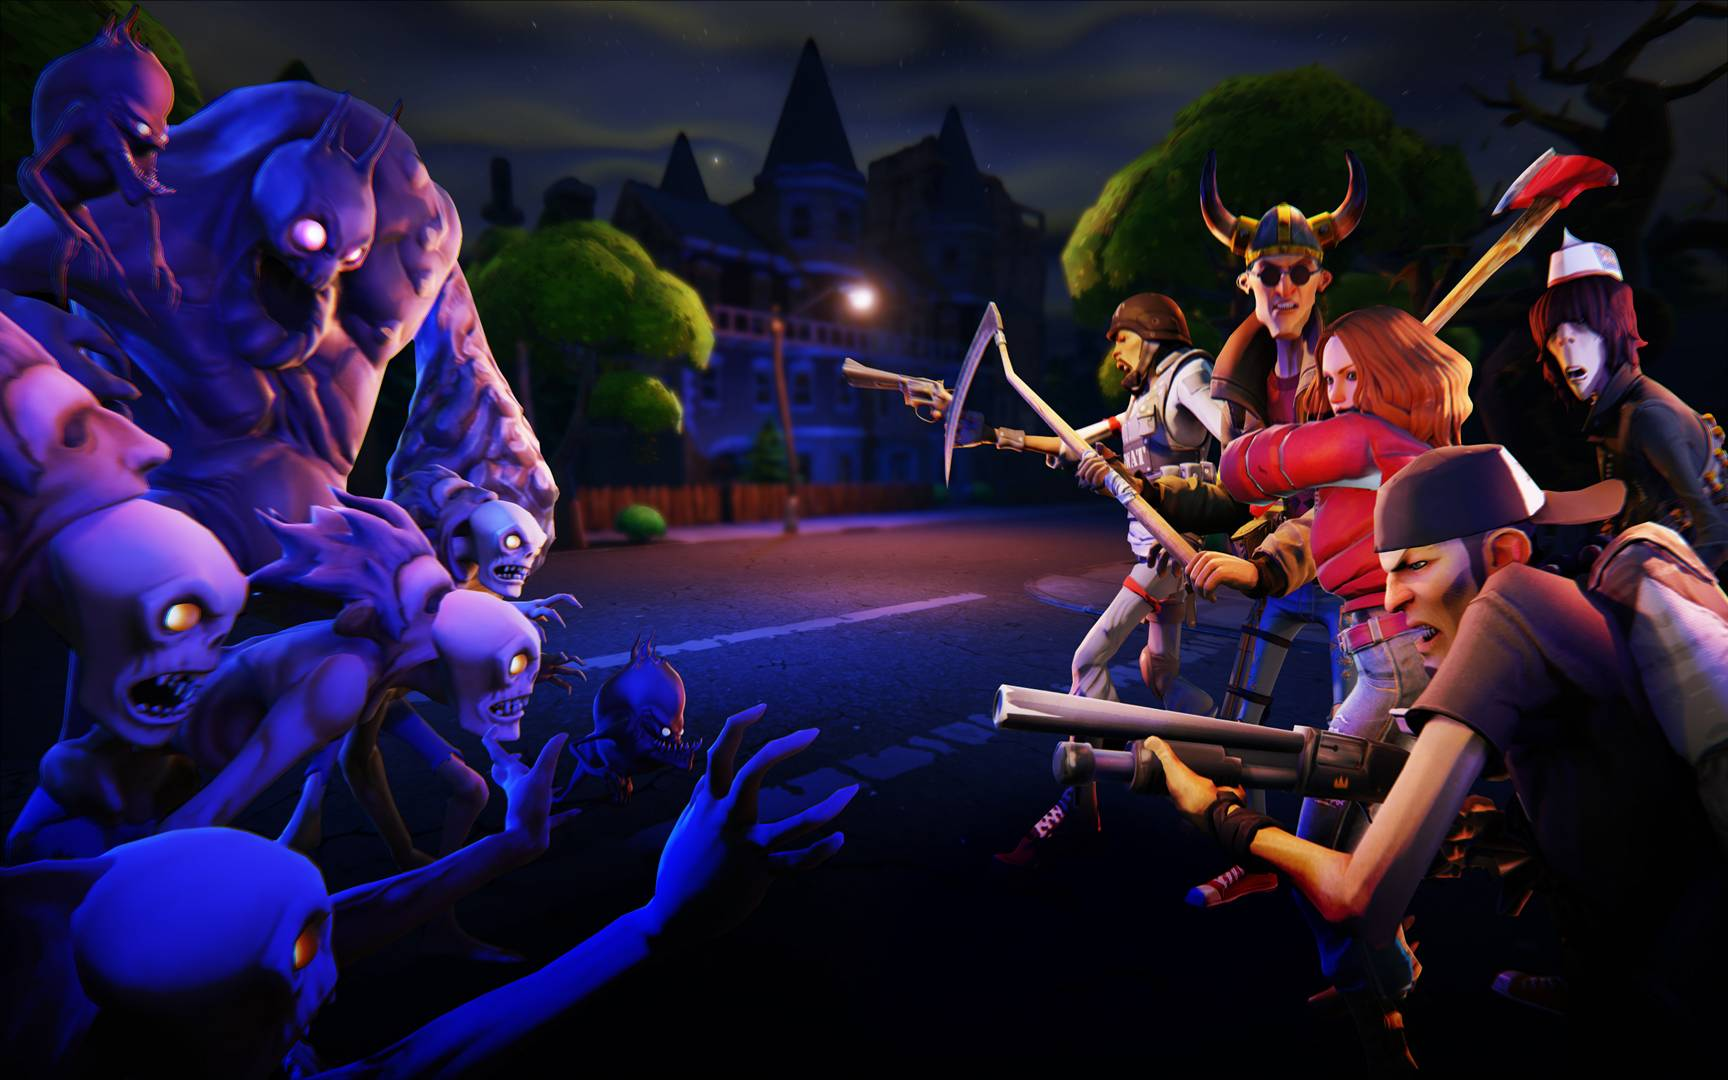 Epic Games Fortnite Wallpaper Video Game